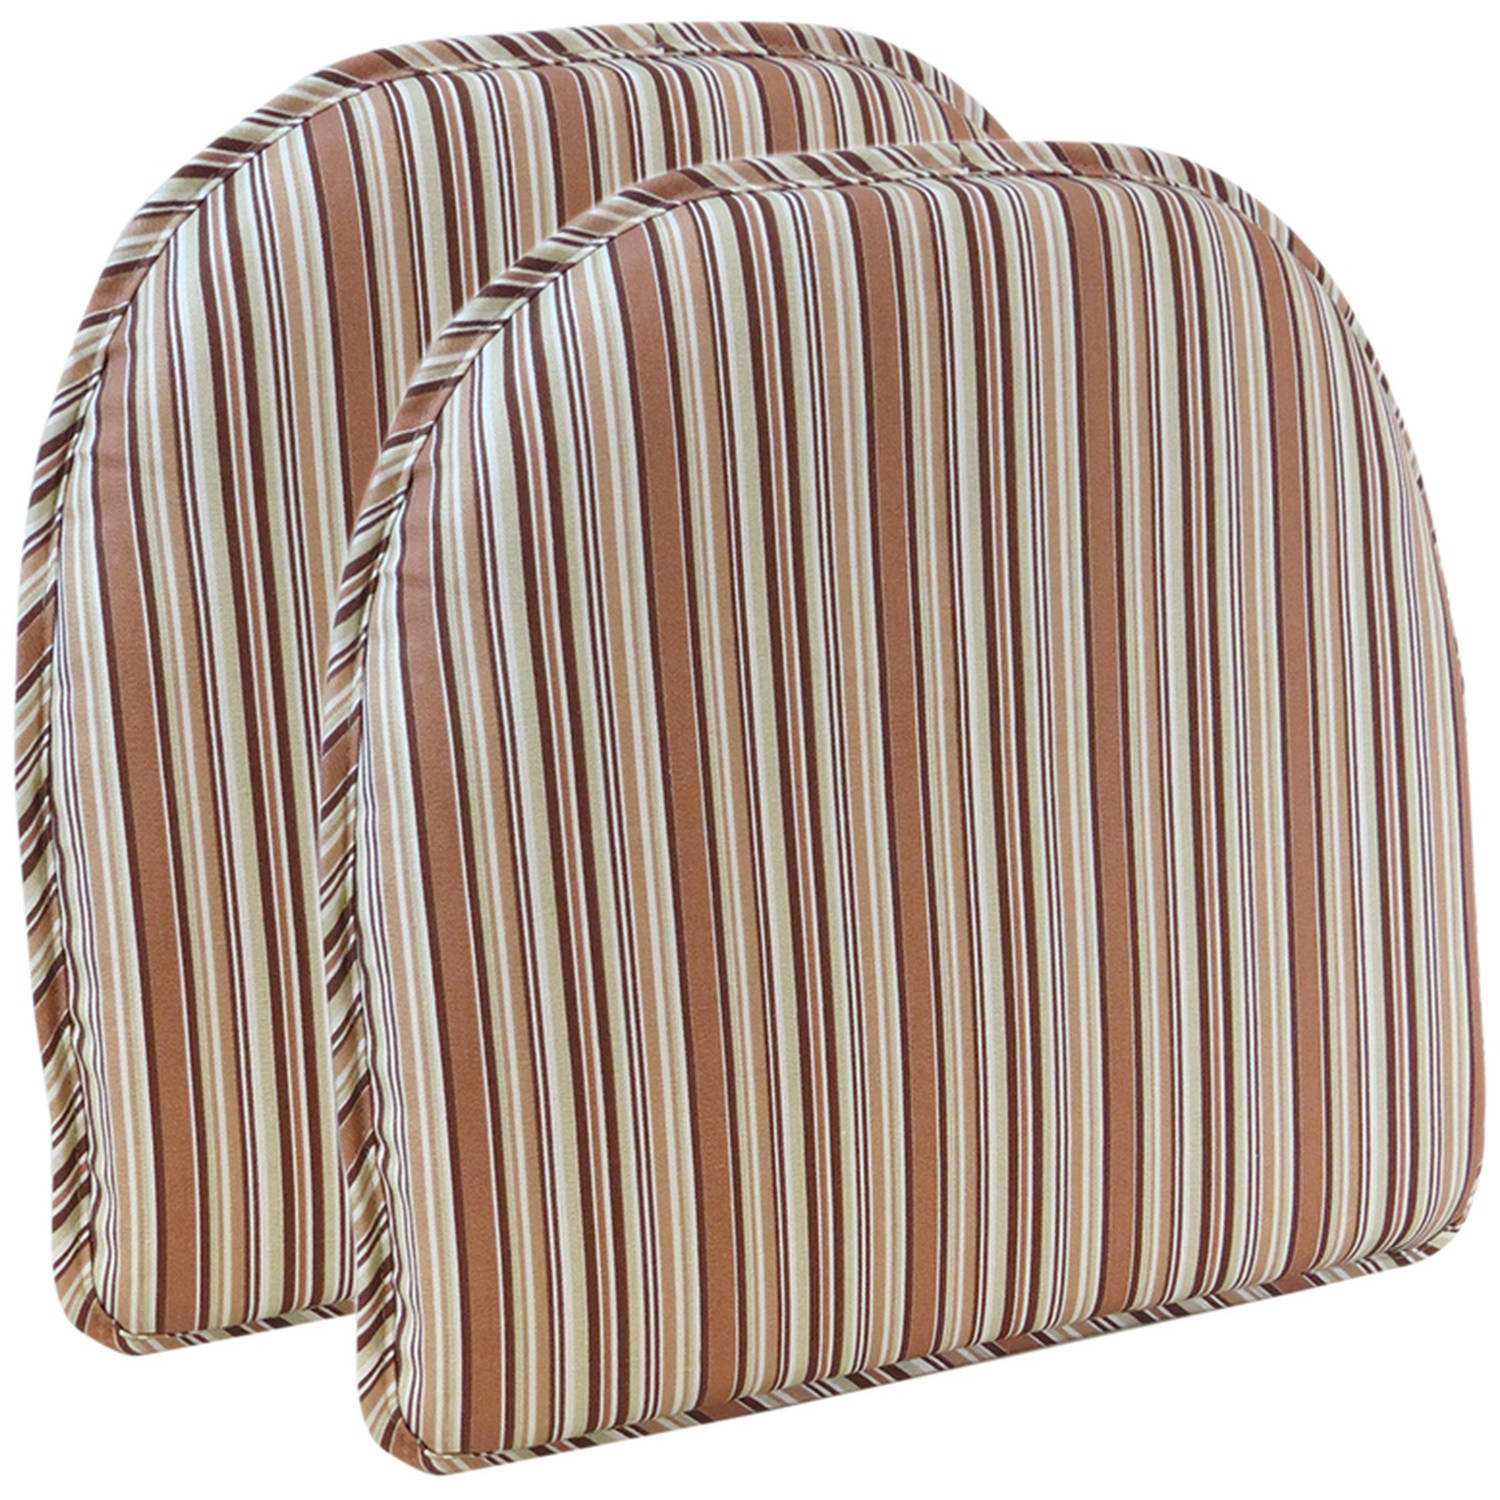 "Gripper Non-Slip 15"" x 16"" Cottage Stripe Chair Cushions, Set of 2"